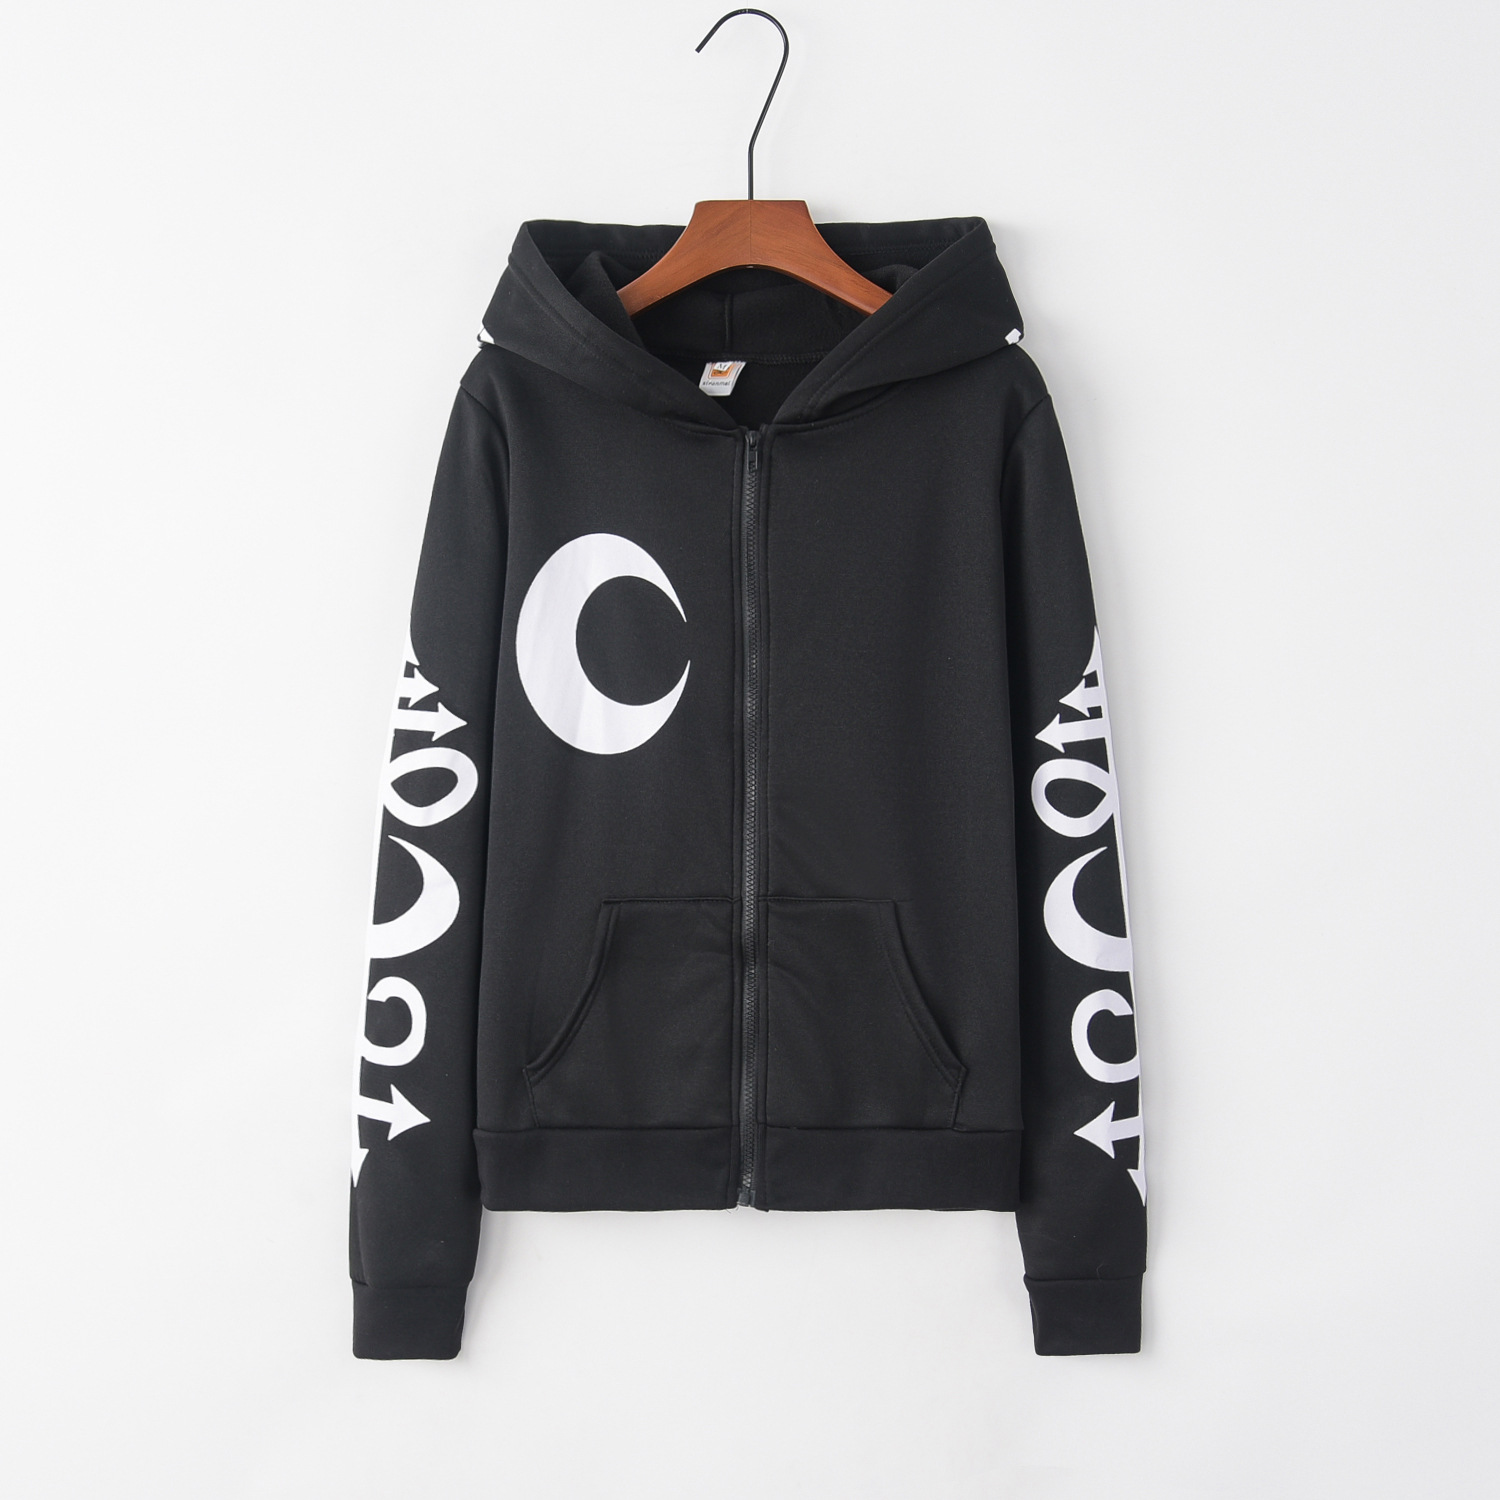 Gothic Moon 2020 New Design Hot Sale Hoodies Sweatshirts Women Casual Kawaii Harajuku Sweat Girls European Tops Korean